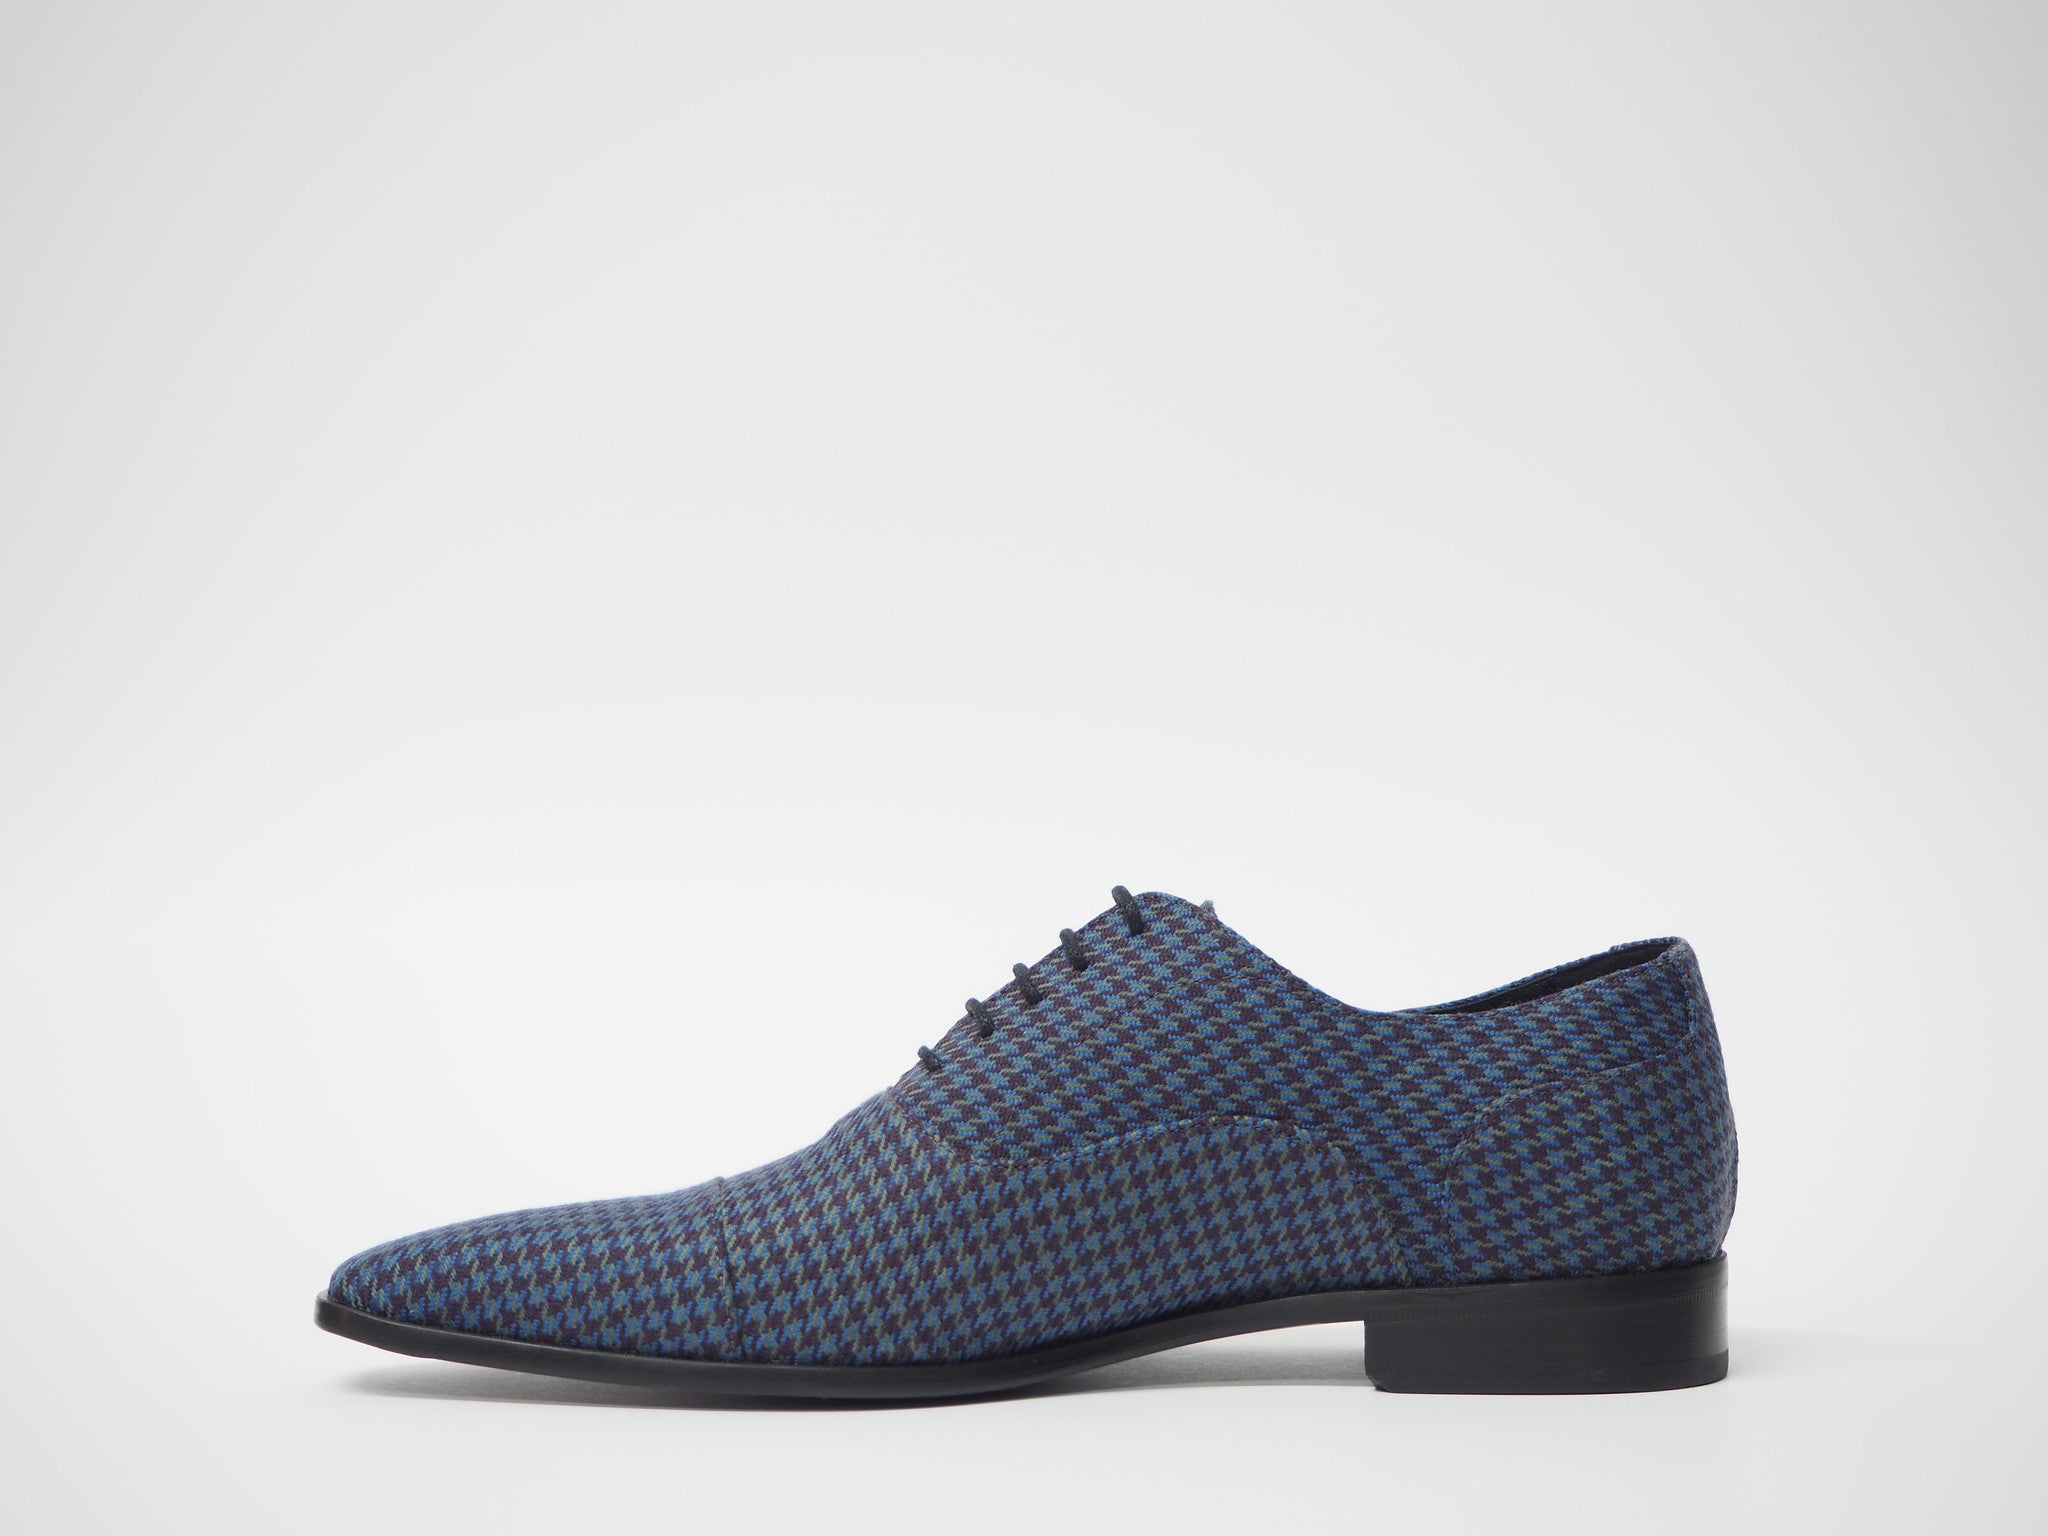 Size 44 - Blue-Violet Pied de Poule Oxford + Belt